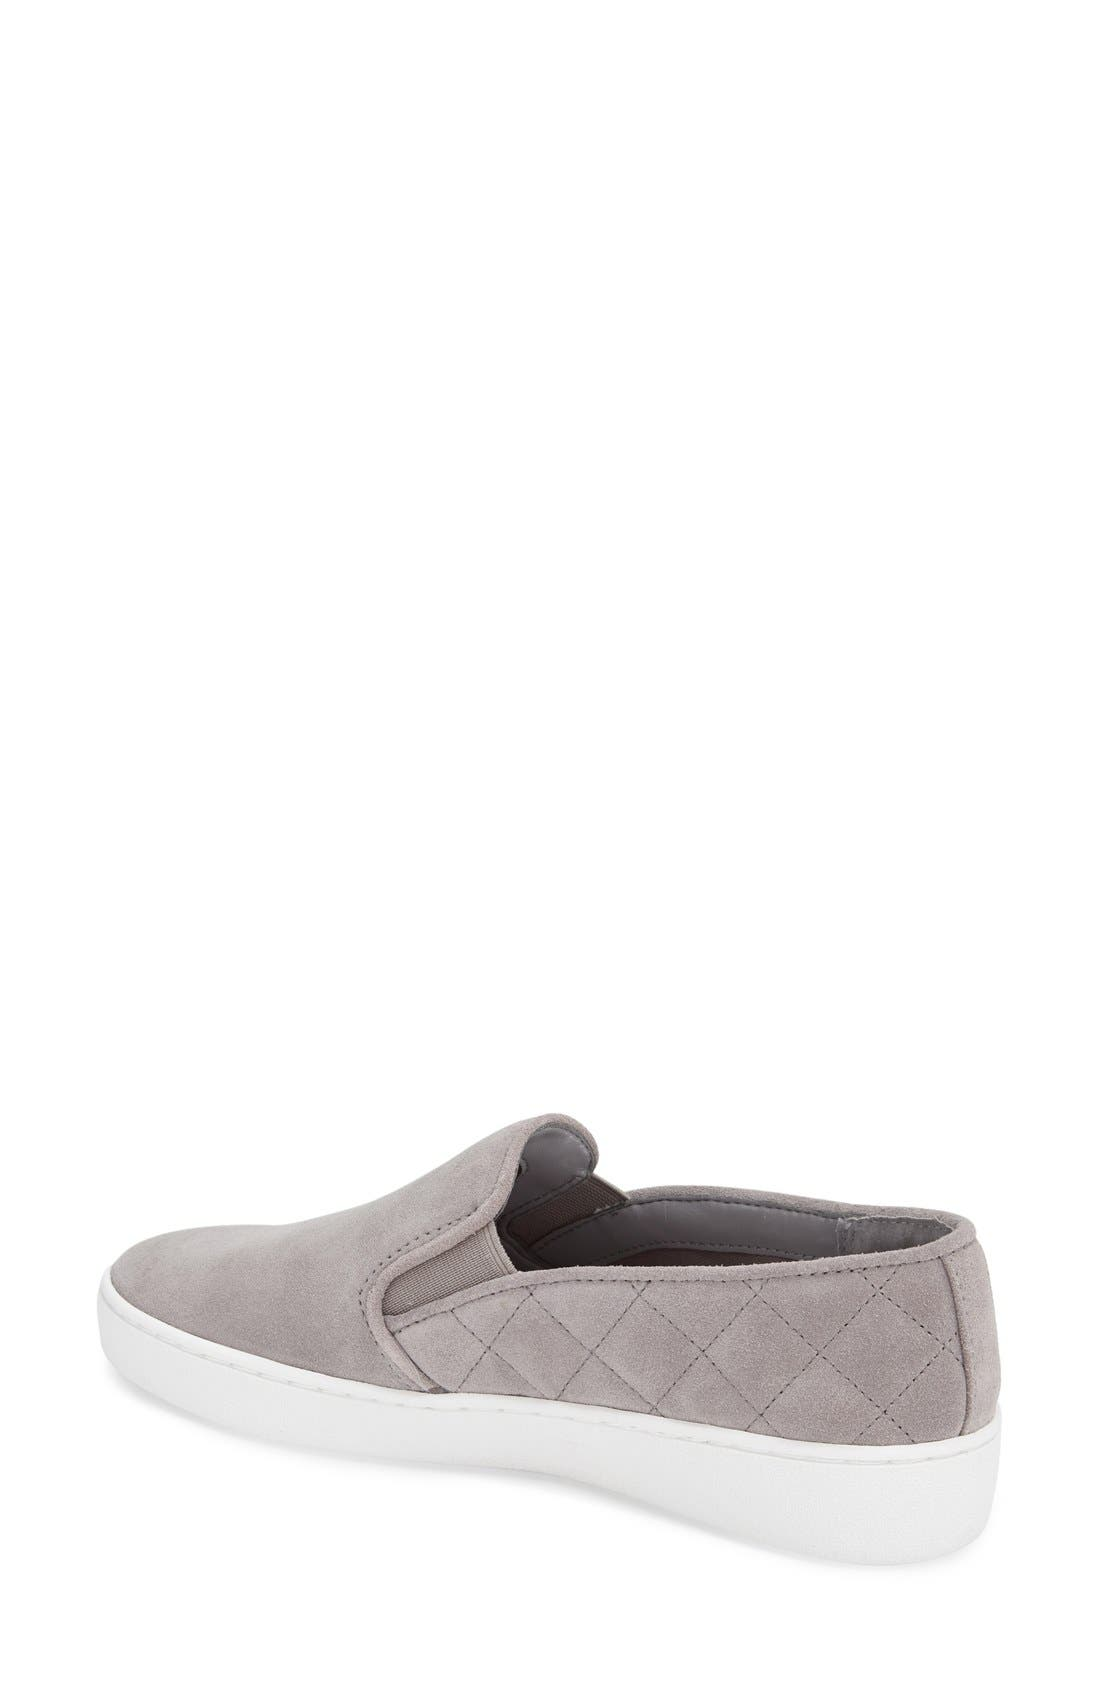 Keaton Slip-On Sneaker,                             Alternate thumbnail 72, color,